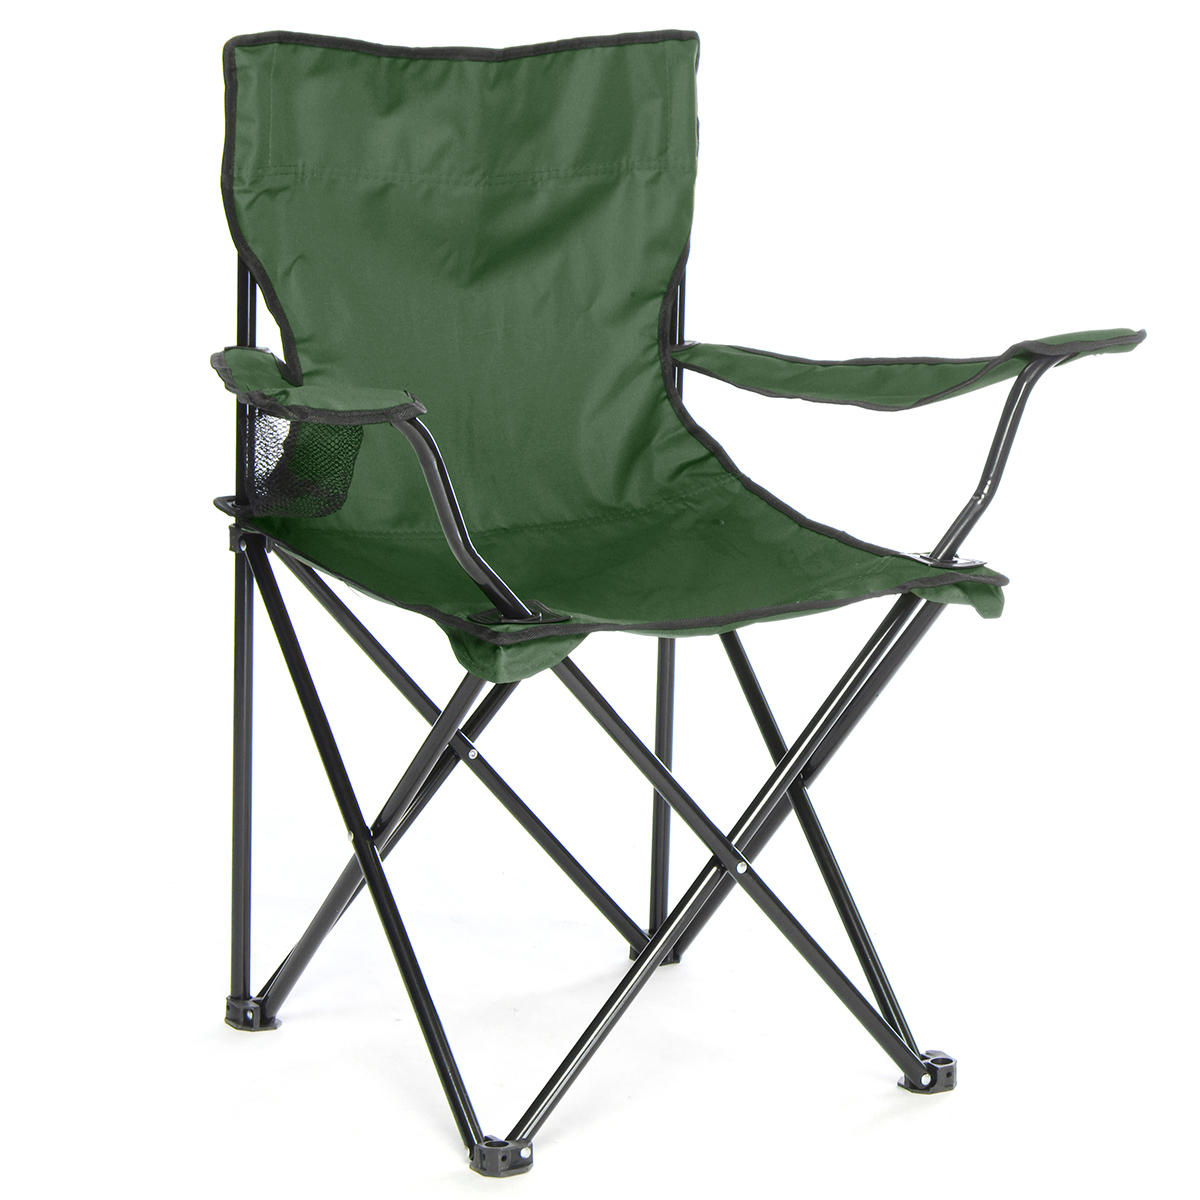 Portable Beach Chair 50x50x80cm Folding Camping Fishing Chair Seat Portable Beach Garden Outdoor Furniture Seat